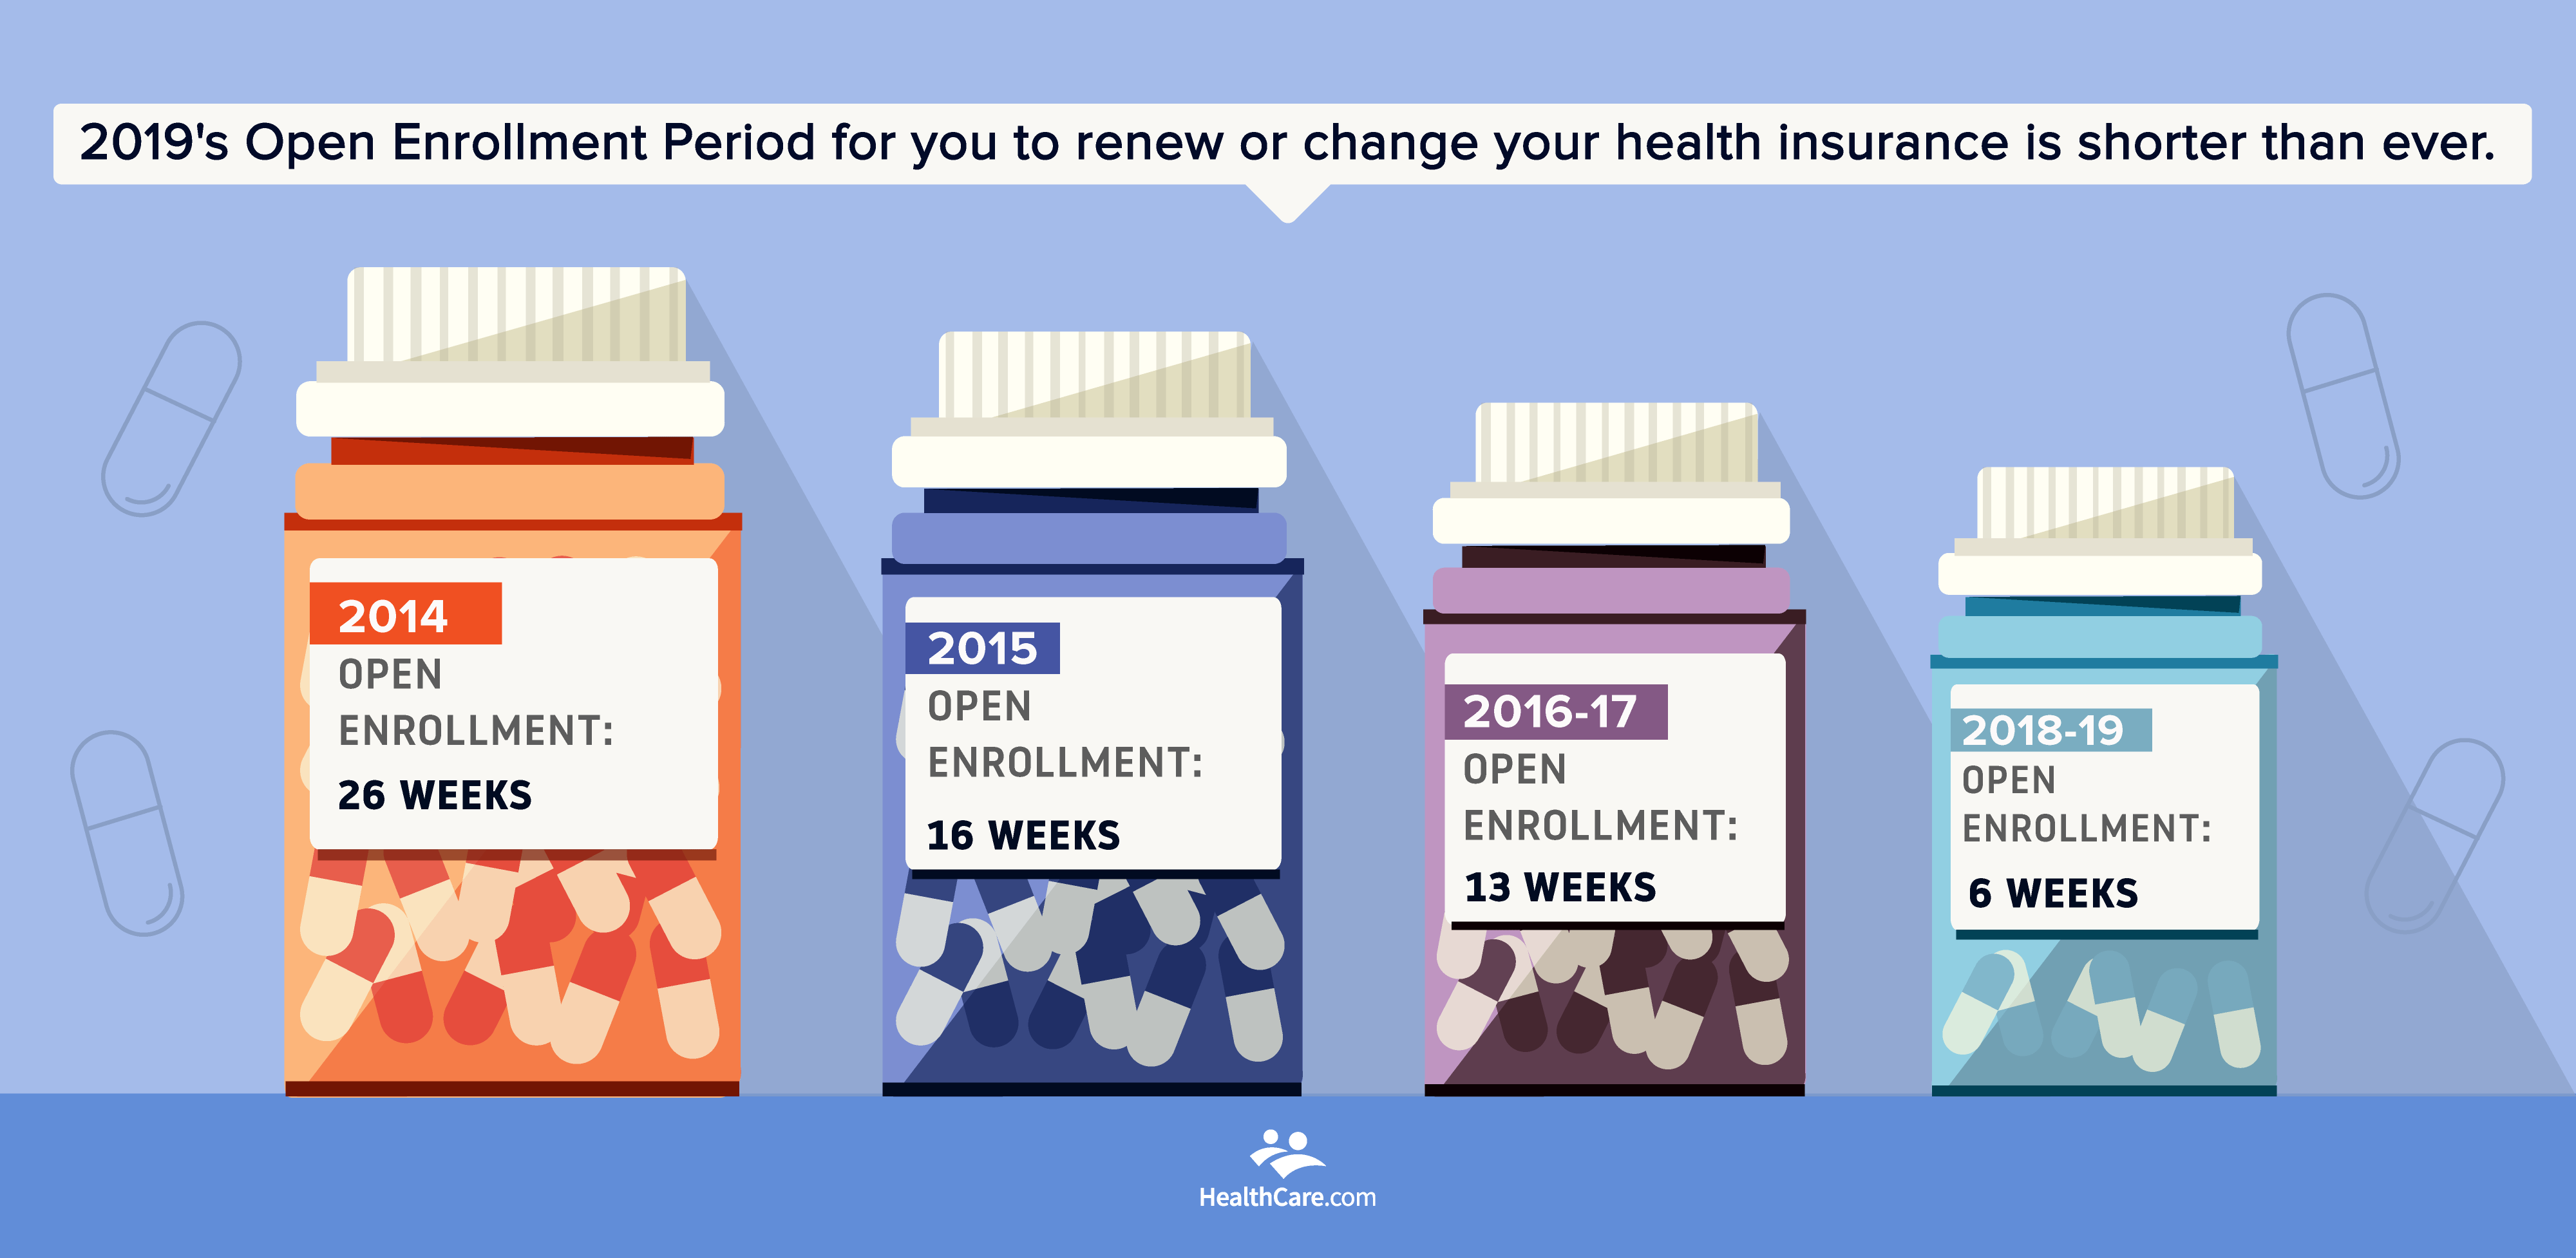 Shrinking Open Enrollment Period 2019 | dated pill bottles